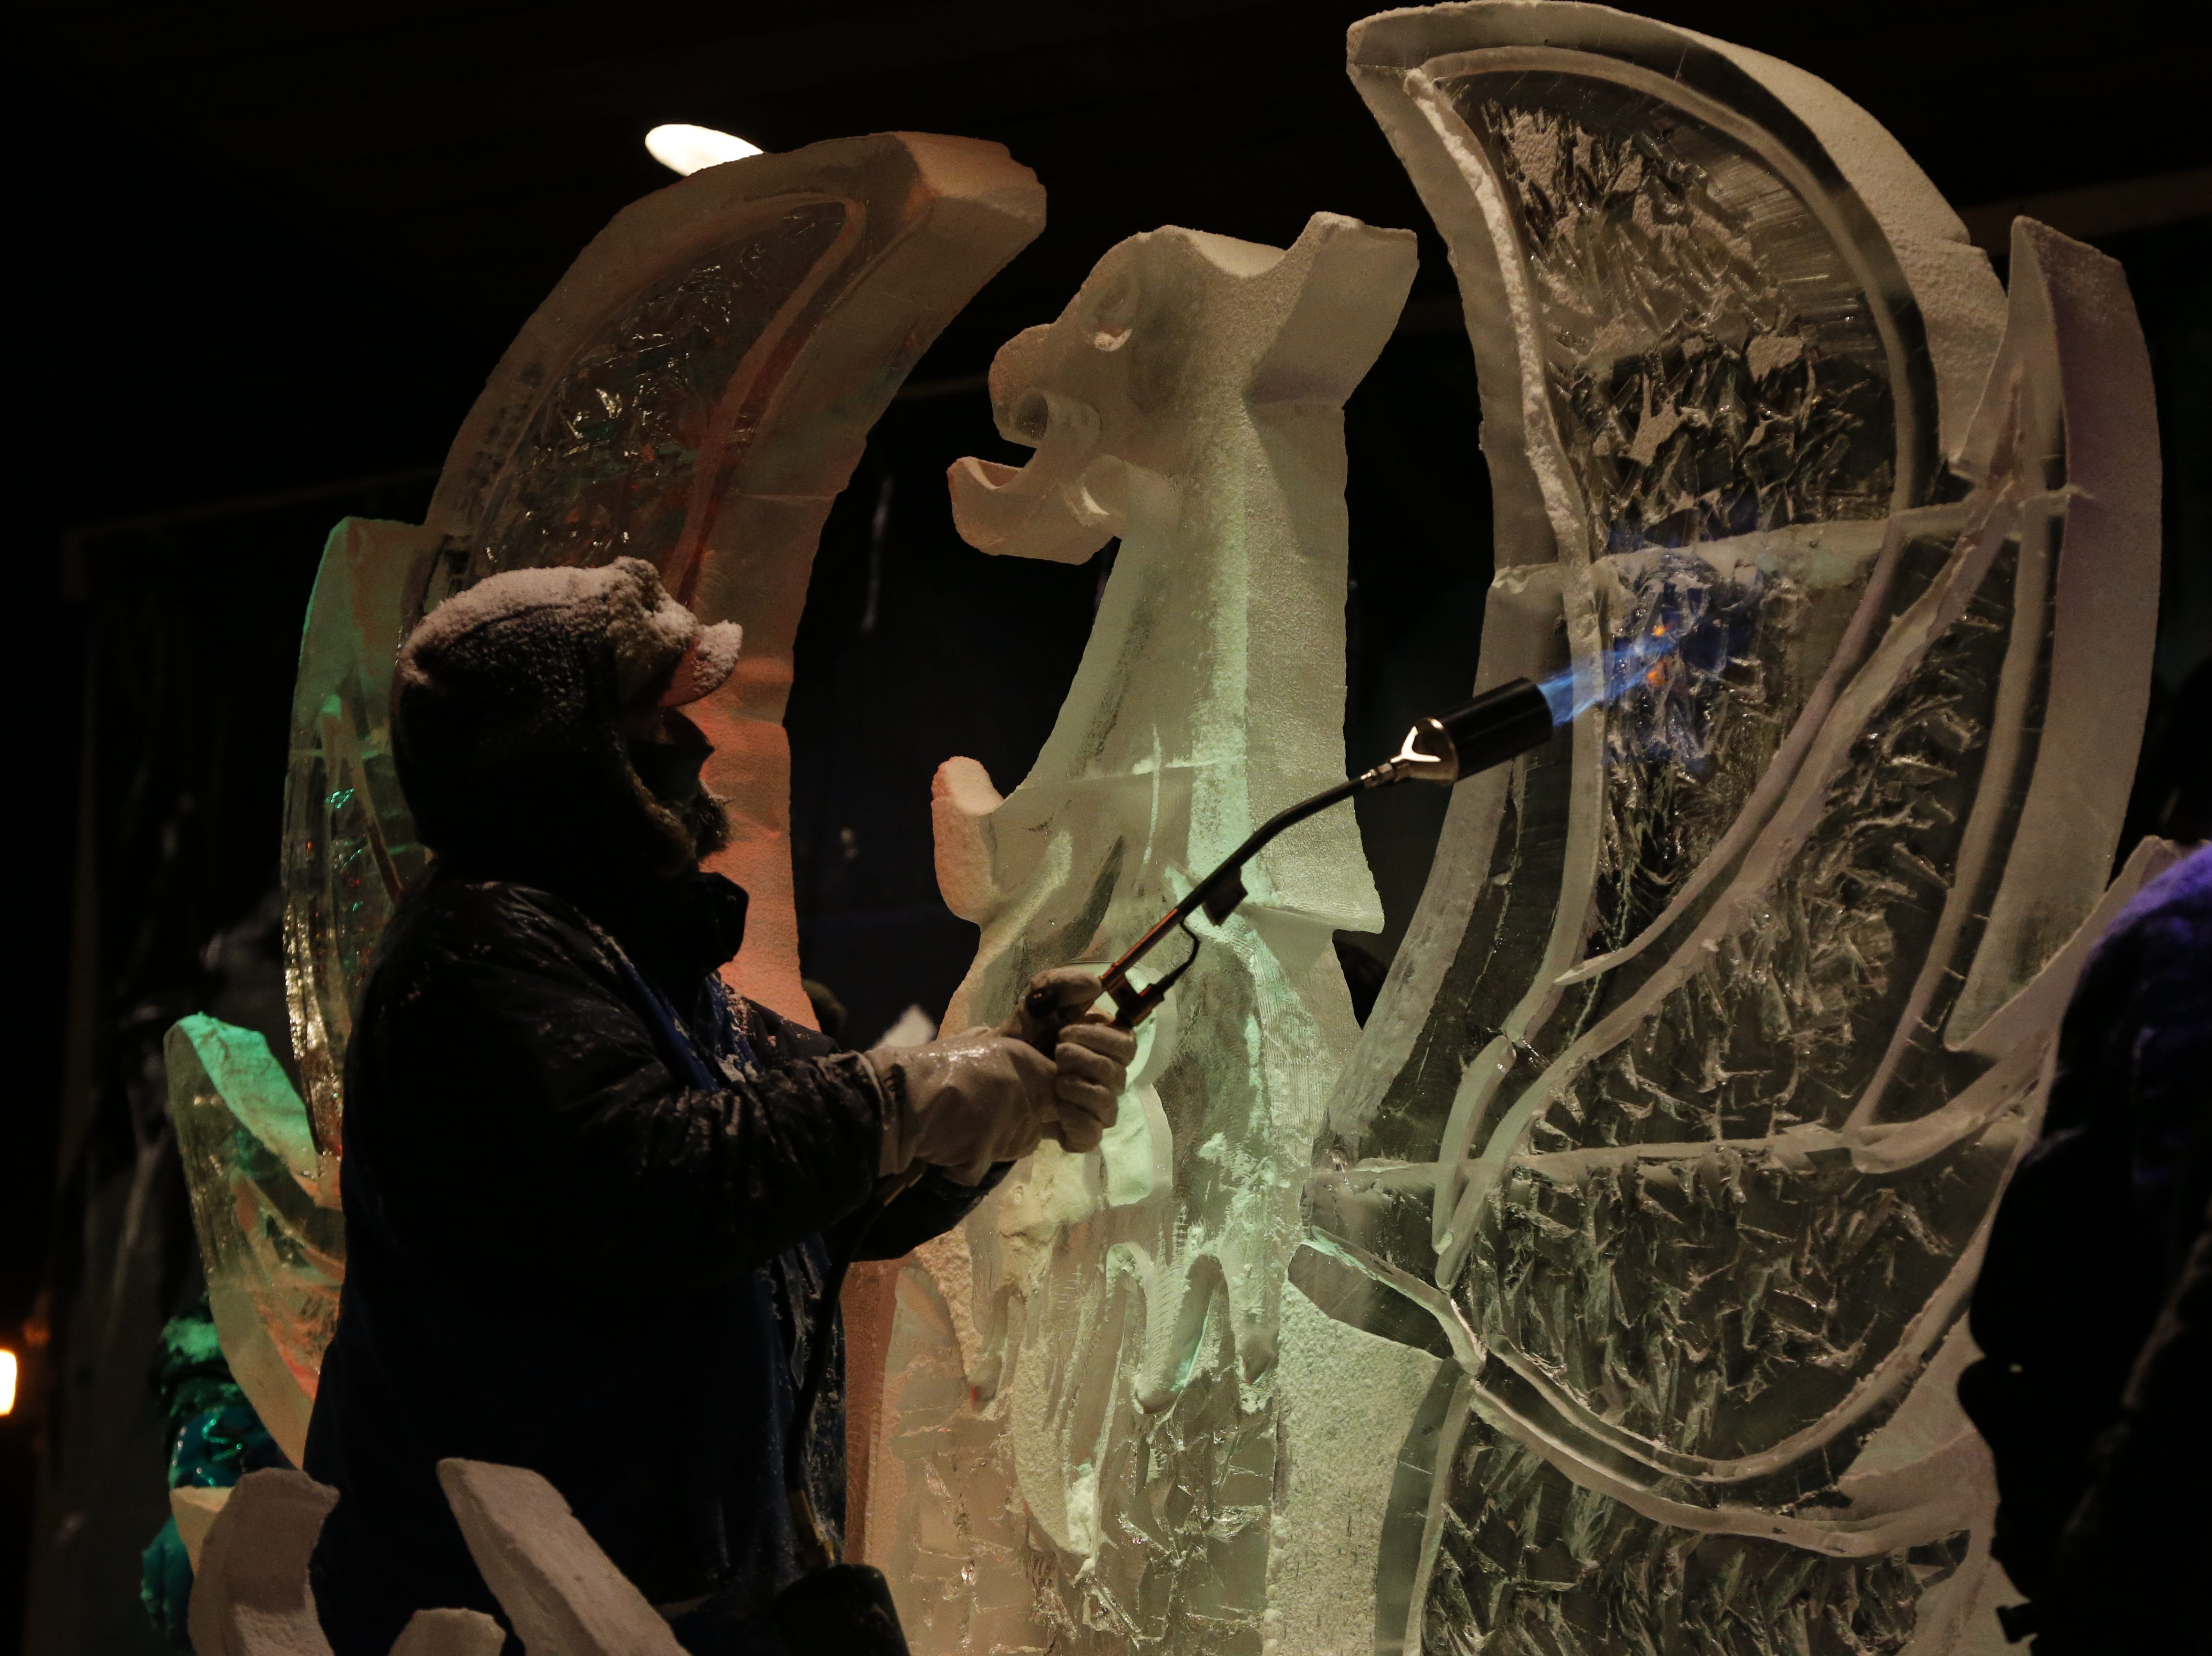 """A blowtorch provides the finishing touches on a phoenix sculpture created during the """"Big Reveal"""" on Friday night."""